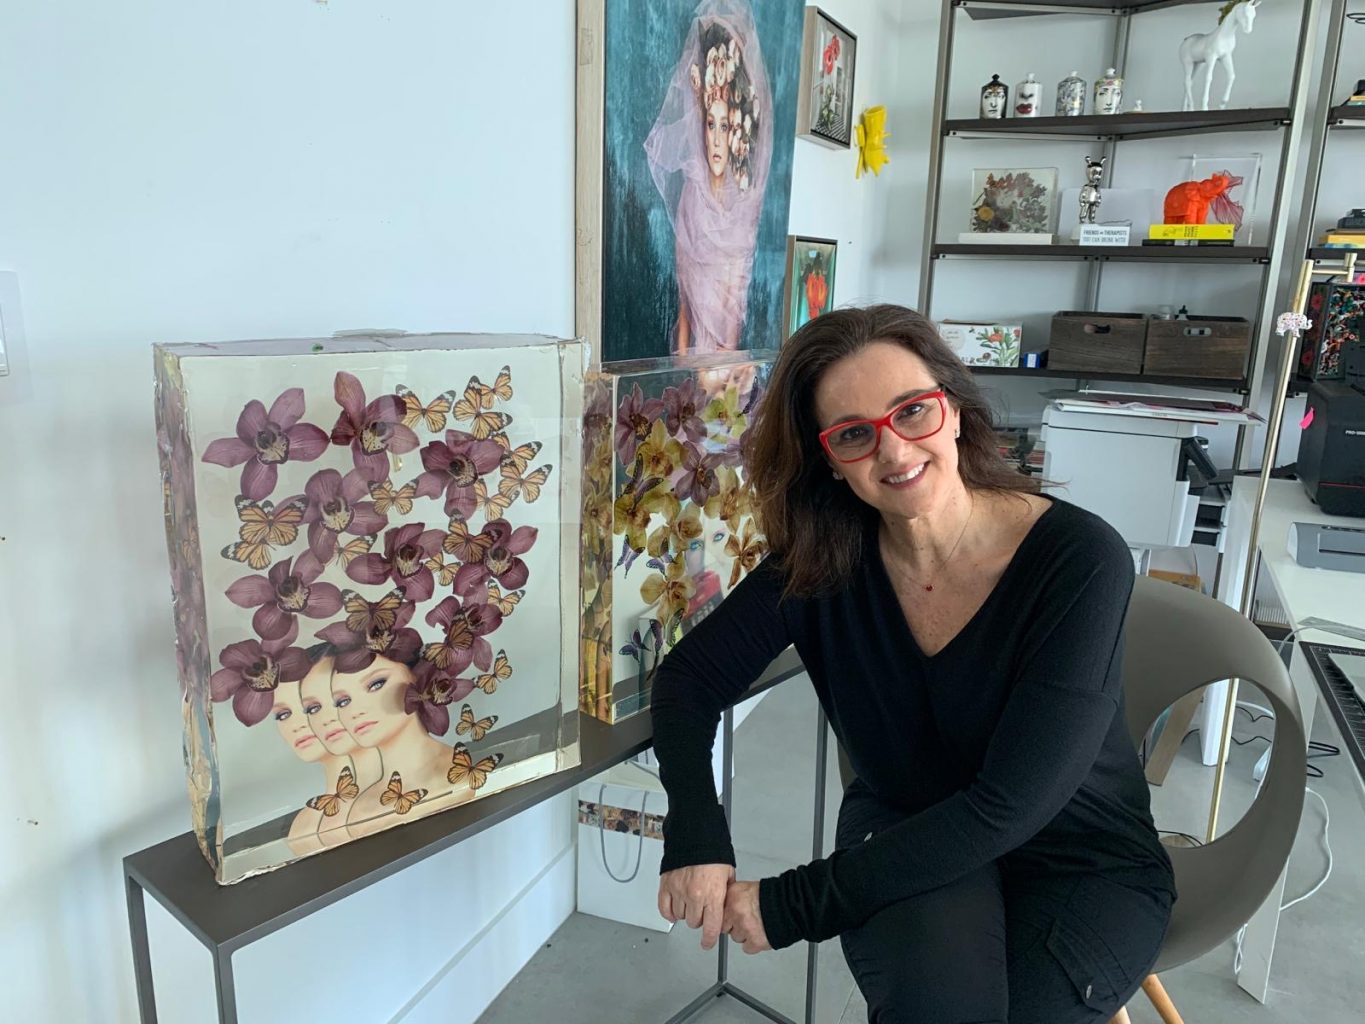 Diana Vurnbrand with her artwork